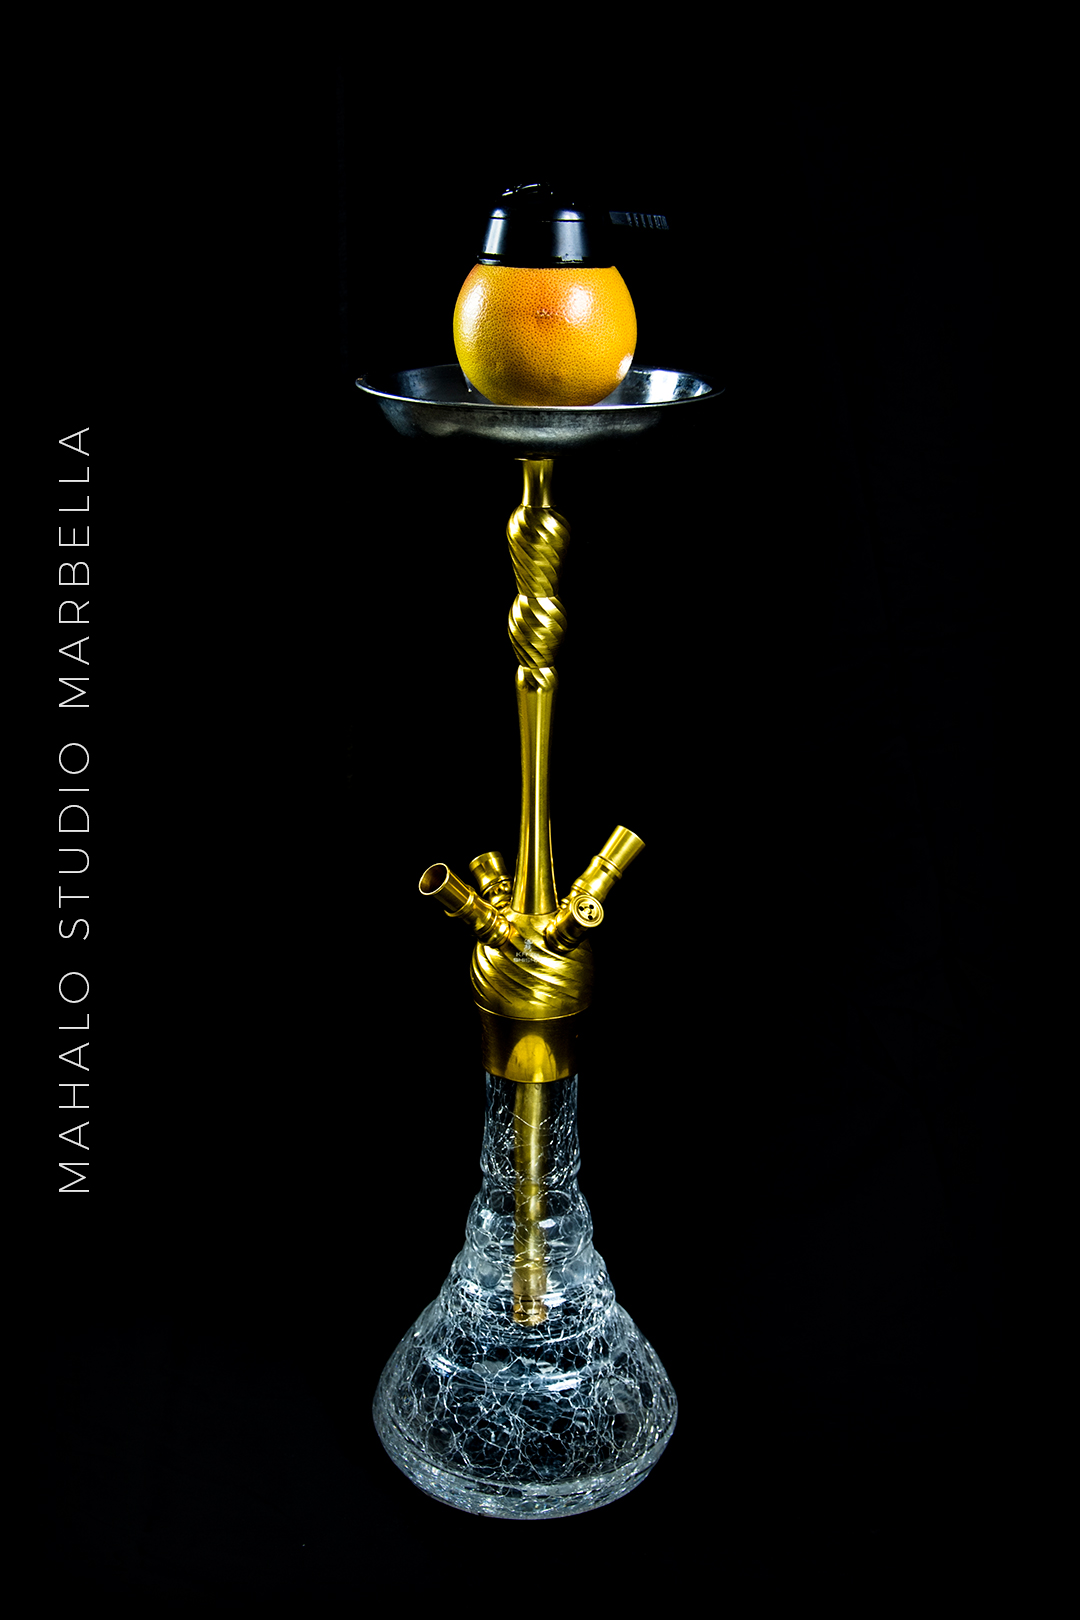 Grapefruit Hookah Dark Black Background